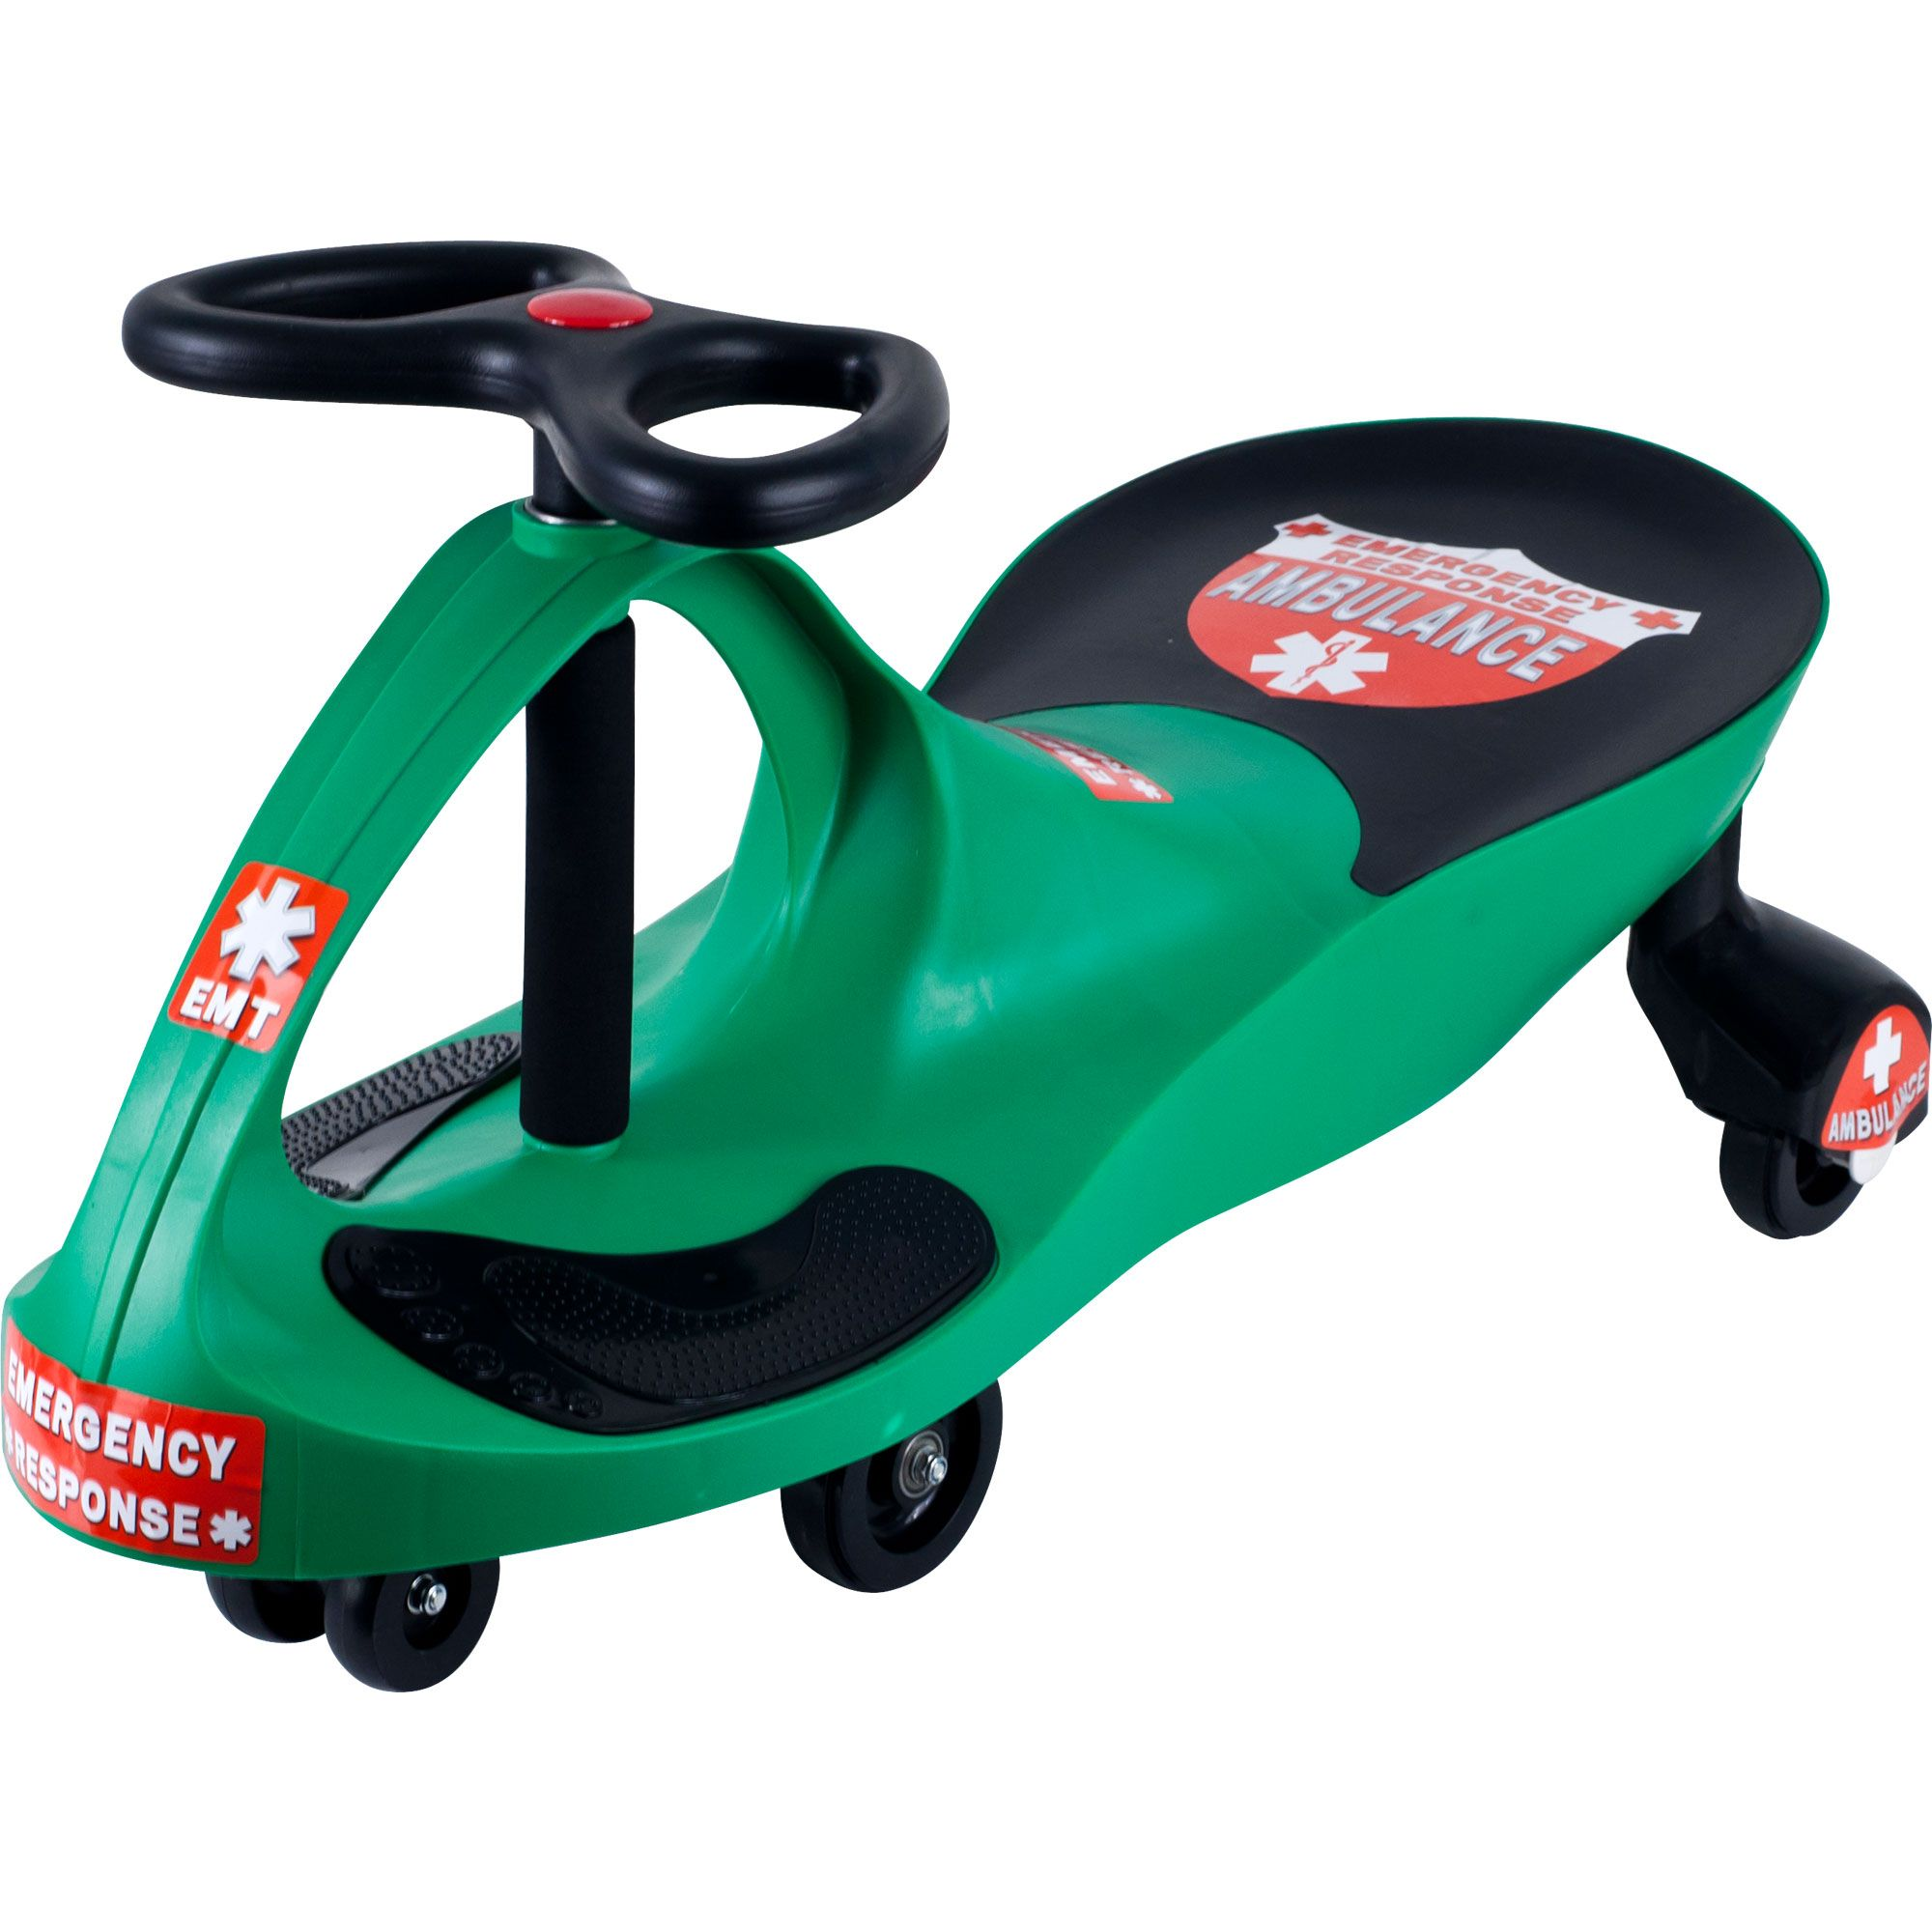 Green Responder Ambulance Wiggle Ride-on Car